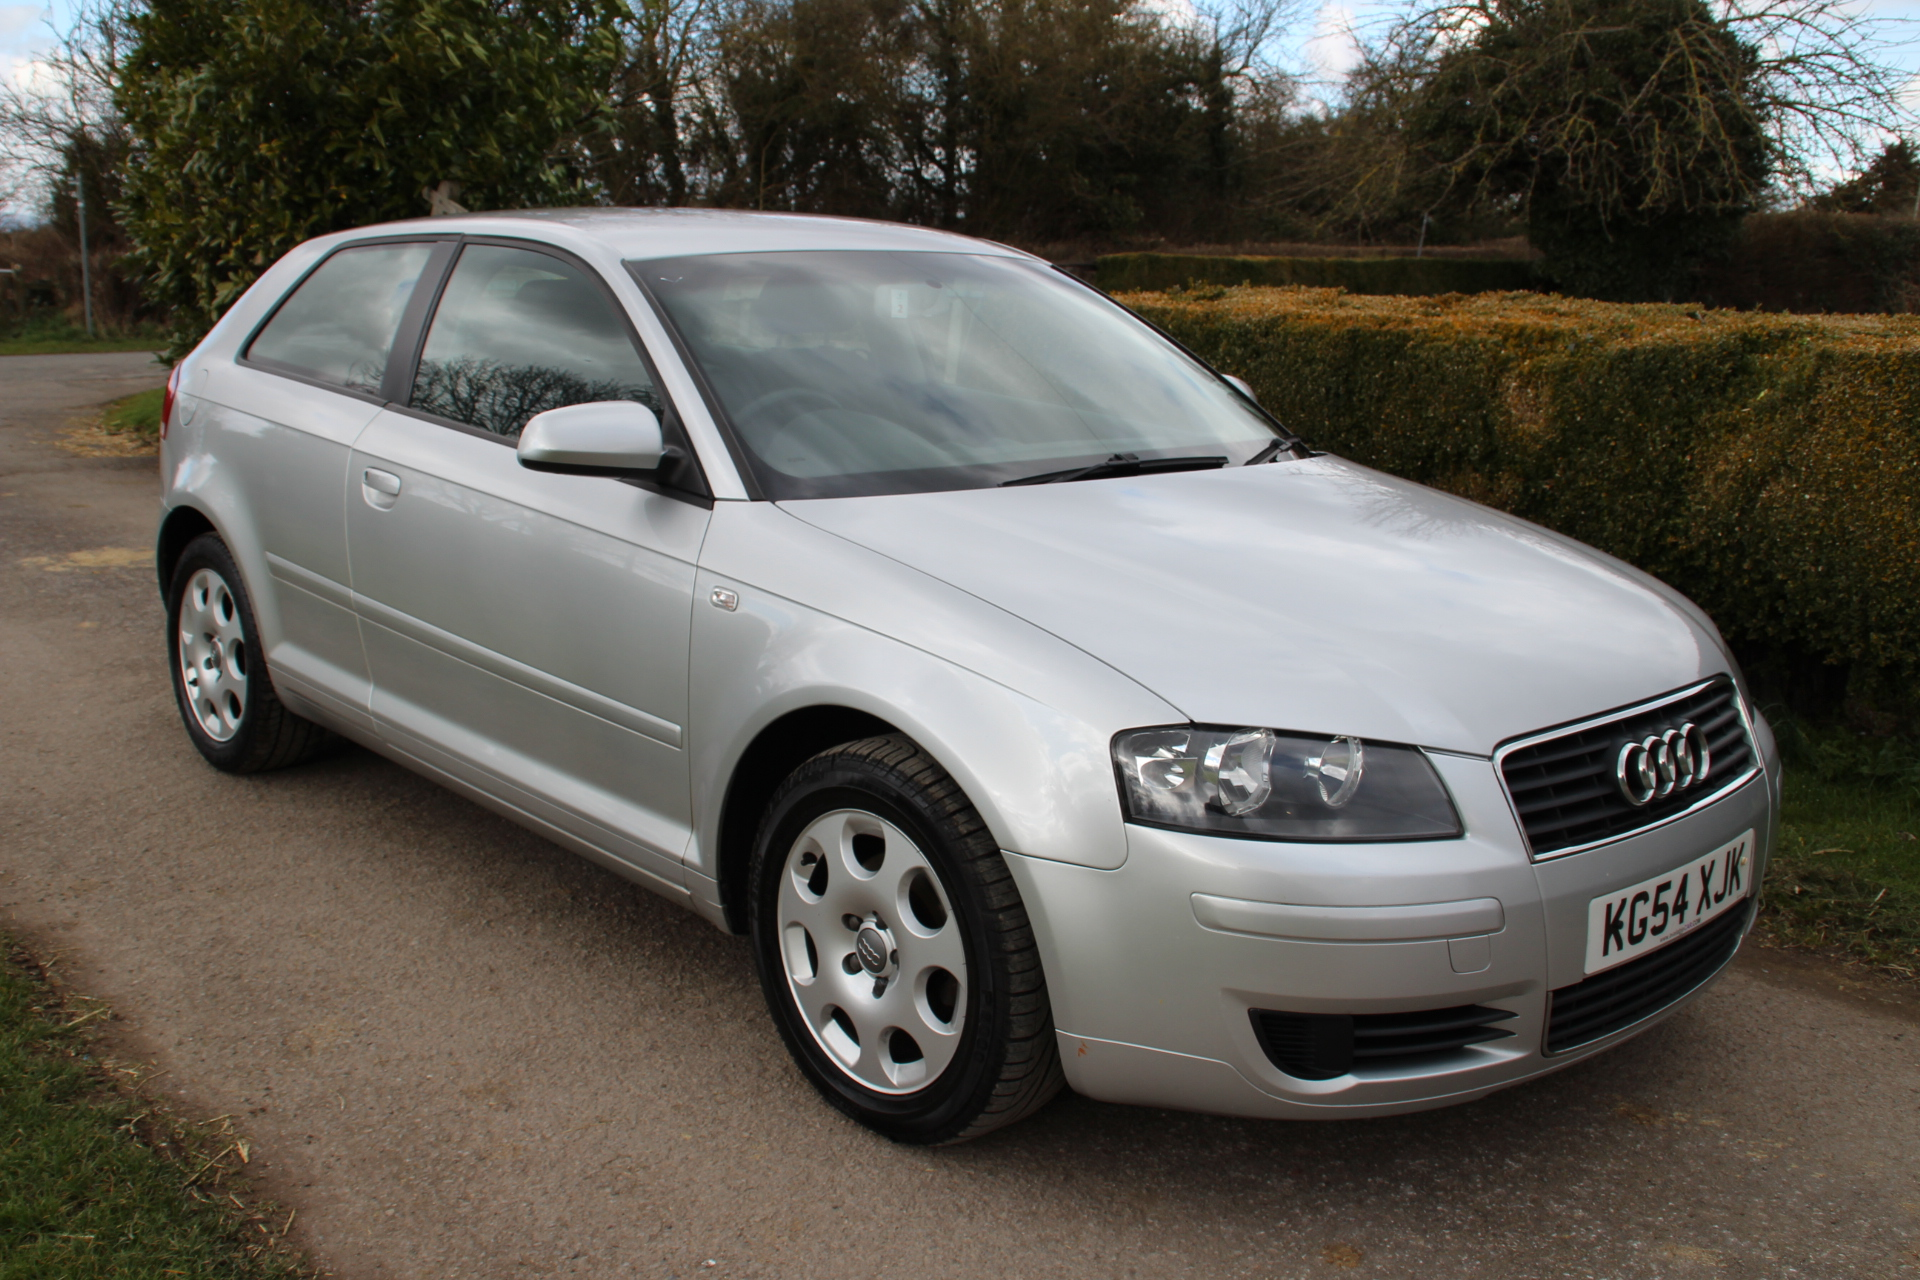 2003 Audi A3 Hatchback 3-door